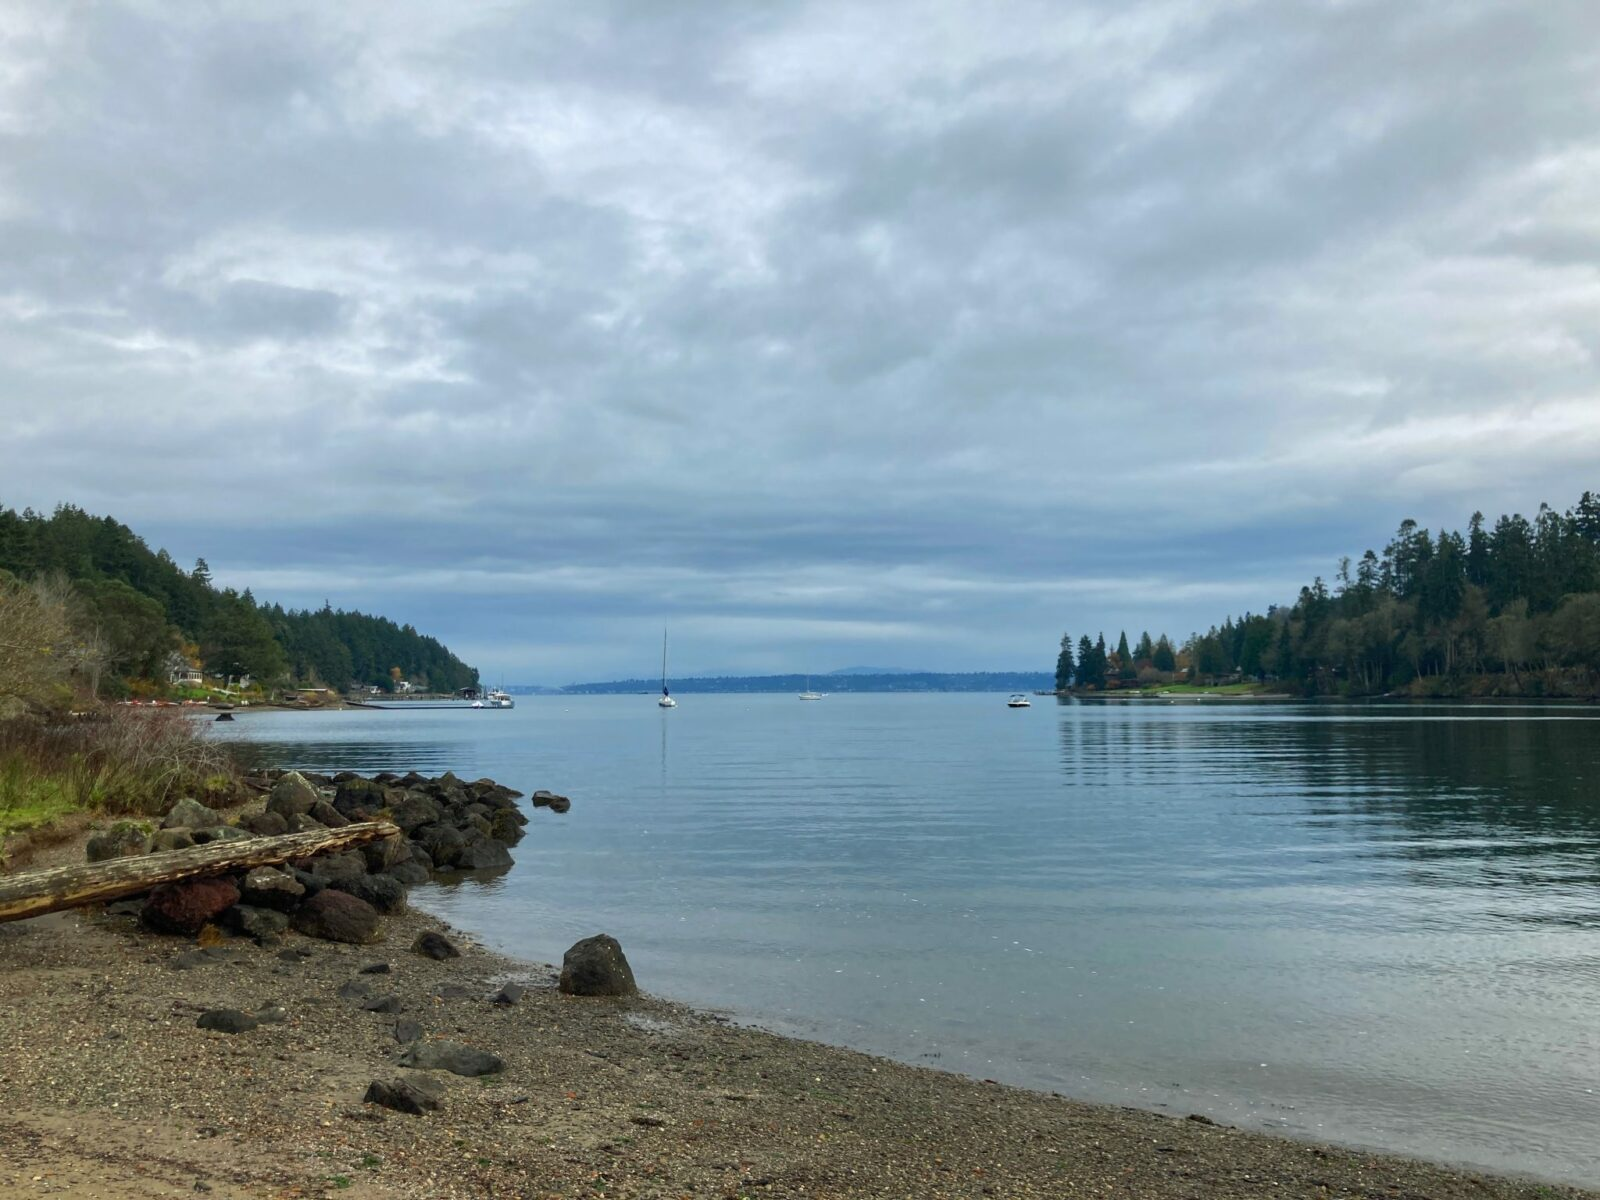 One of the hikes on bainbridge island leads from Fort Ward to the head of Blakeley Harbor in Blakeley Harbor park. The park has a rocky beach that is surrounded by evergreen trees. The harbor is shallow and narrow, with a few boats anchored in the distance.